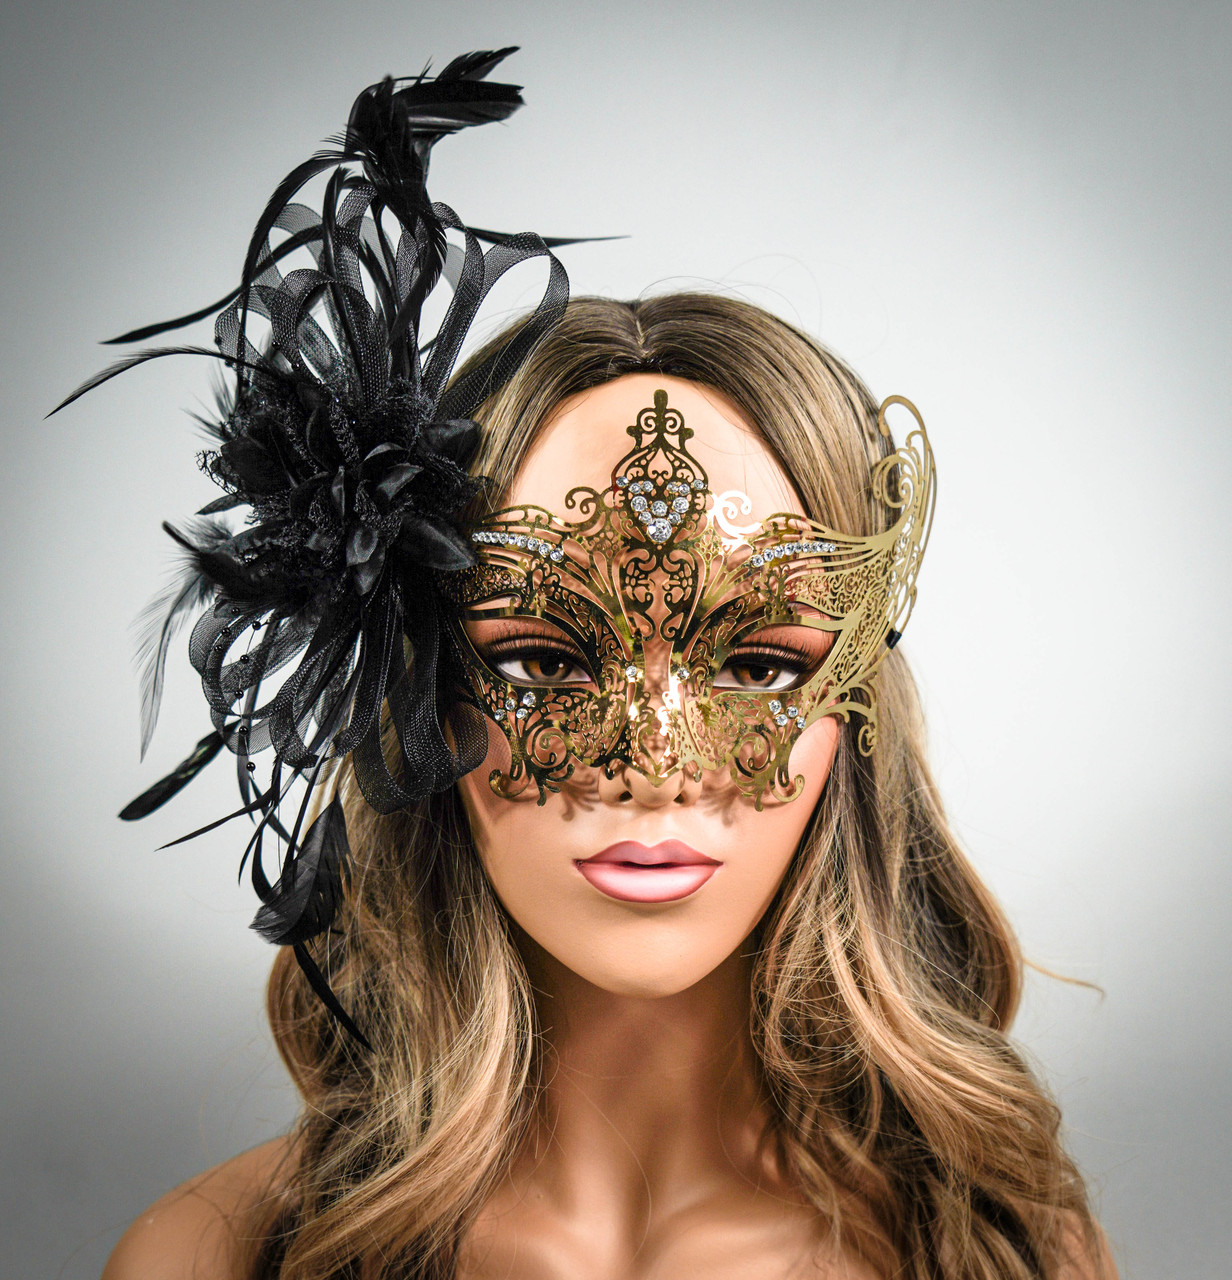 gold metal filigree mask with feathers Gold Luxury Masks with feathers metal mask with feathers women